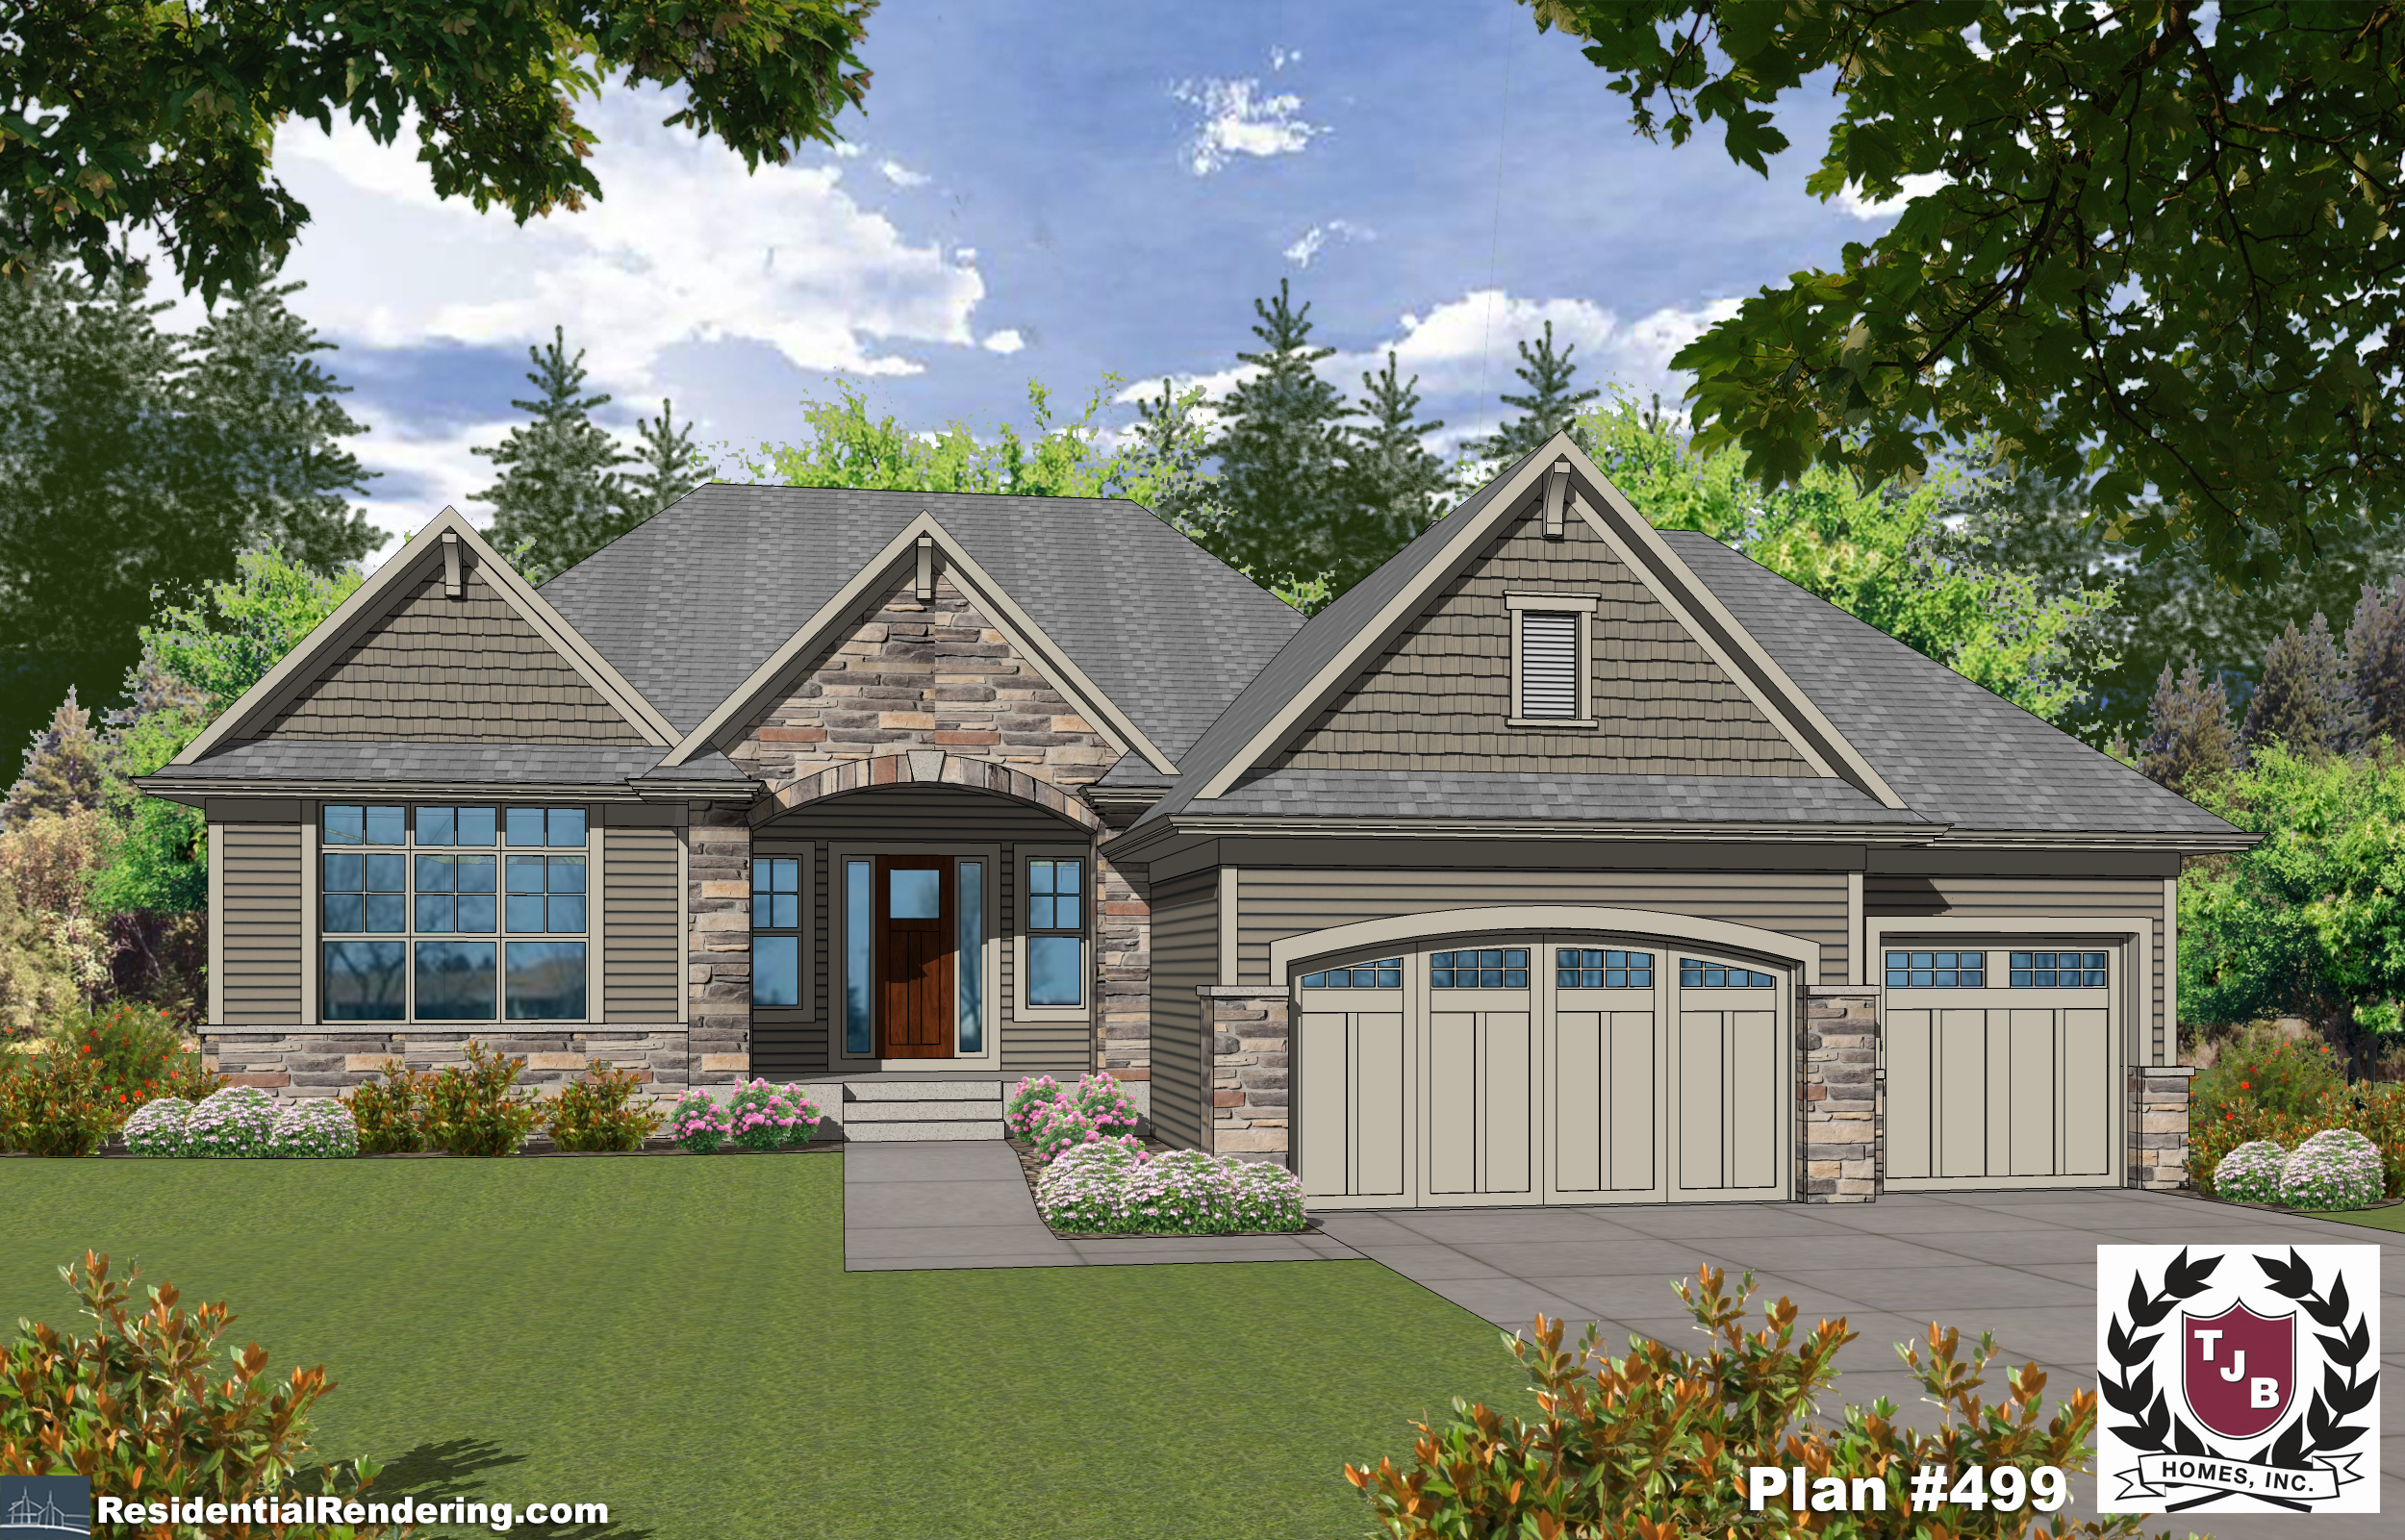 TJB Plan #499 Home Plan Front Color Rendering